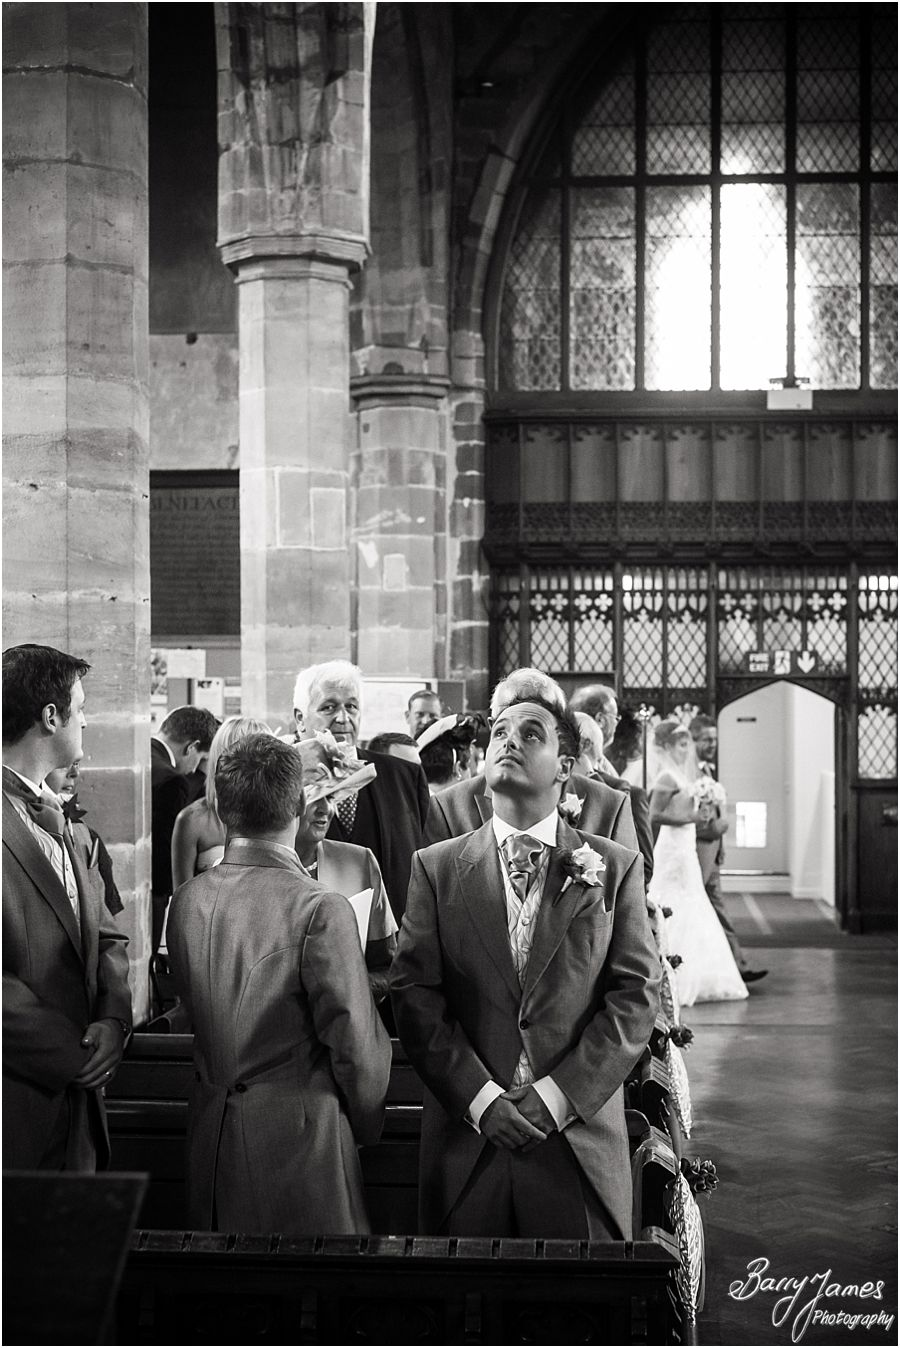 Documentary creative wedding photography at Alrewas Hayes in Burton upon Trent, Staffordshire by Candid Wedding Photographer Barry James